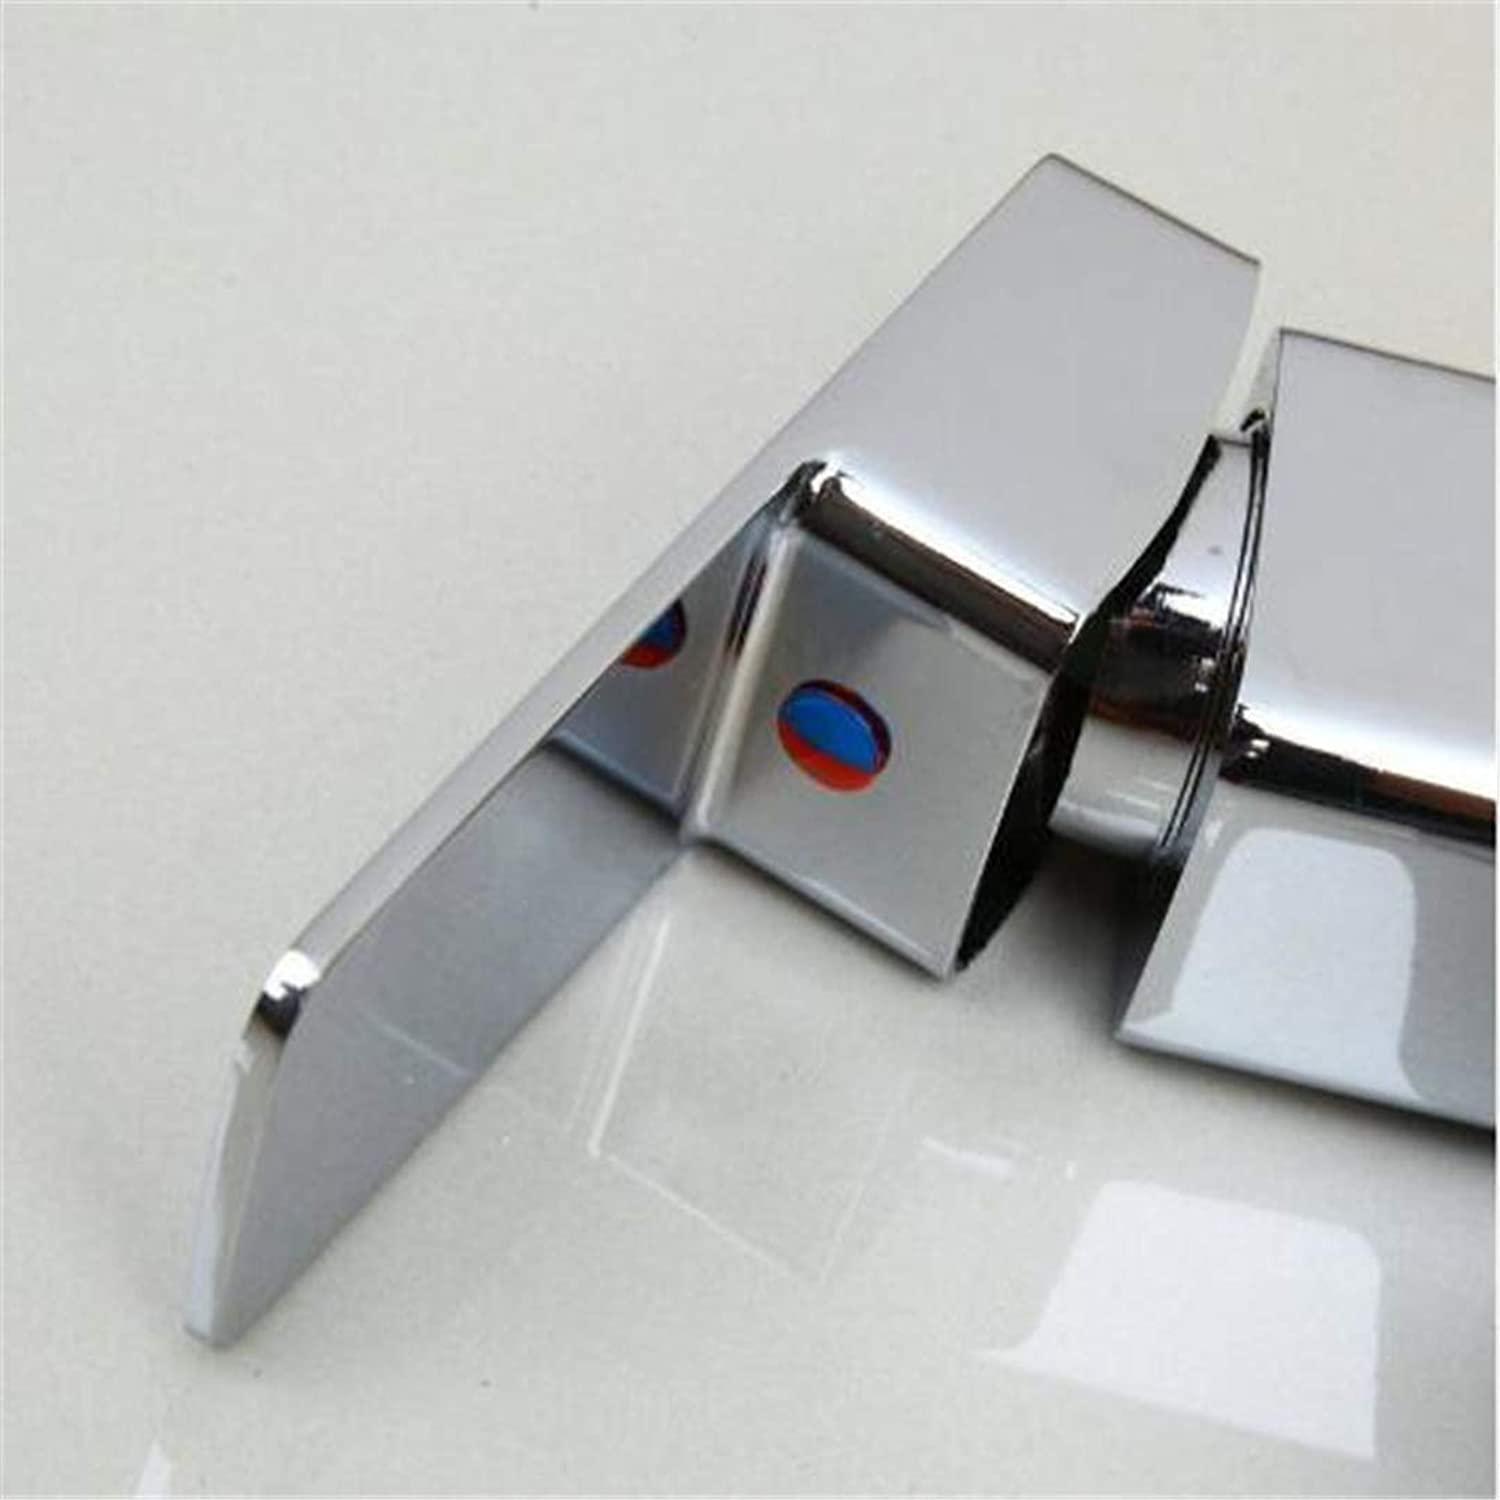 Oudan Bathroom Basin Faucet Kitchen Faucet Hot and Cold Taps Crossbathroom Faucet Basin Sink Tap Hot and Cold Water Mixer Tap Deck Mounted Bathroom Faucet Without The Hose (color   -, Size   -)